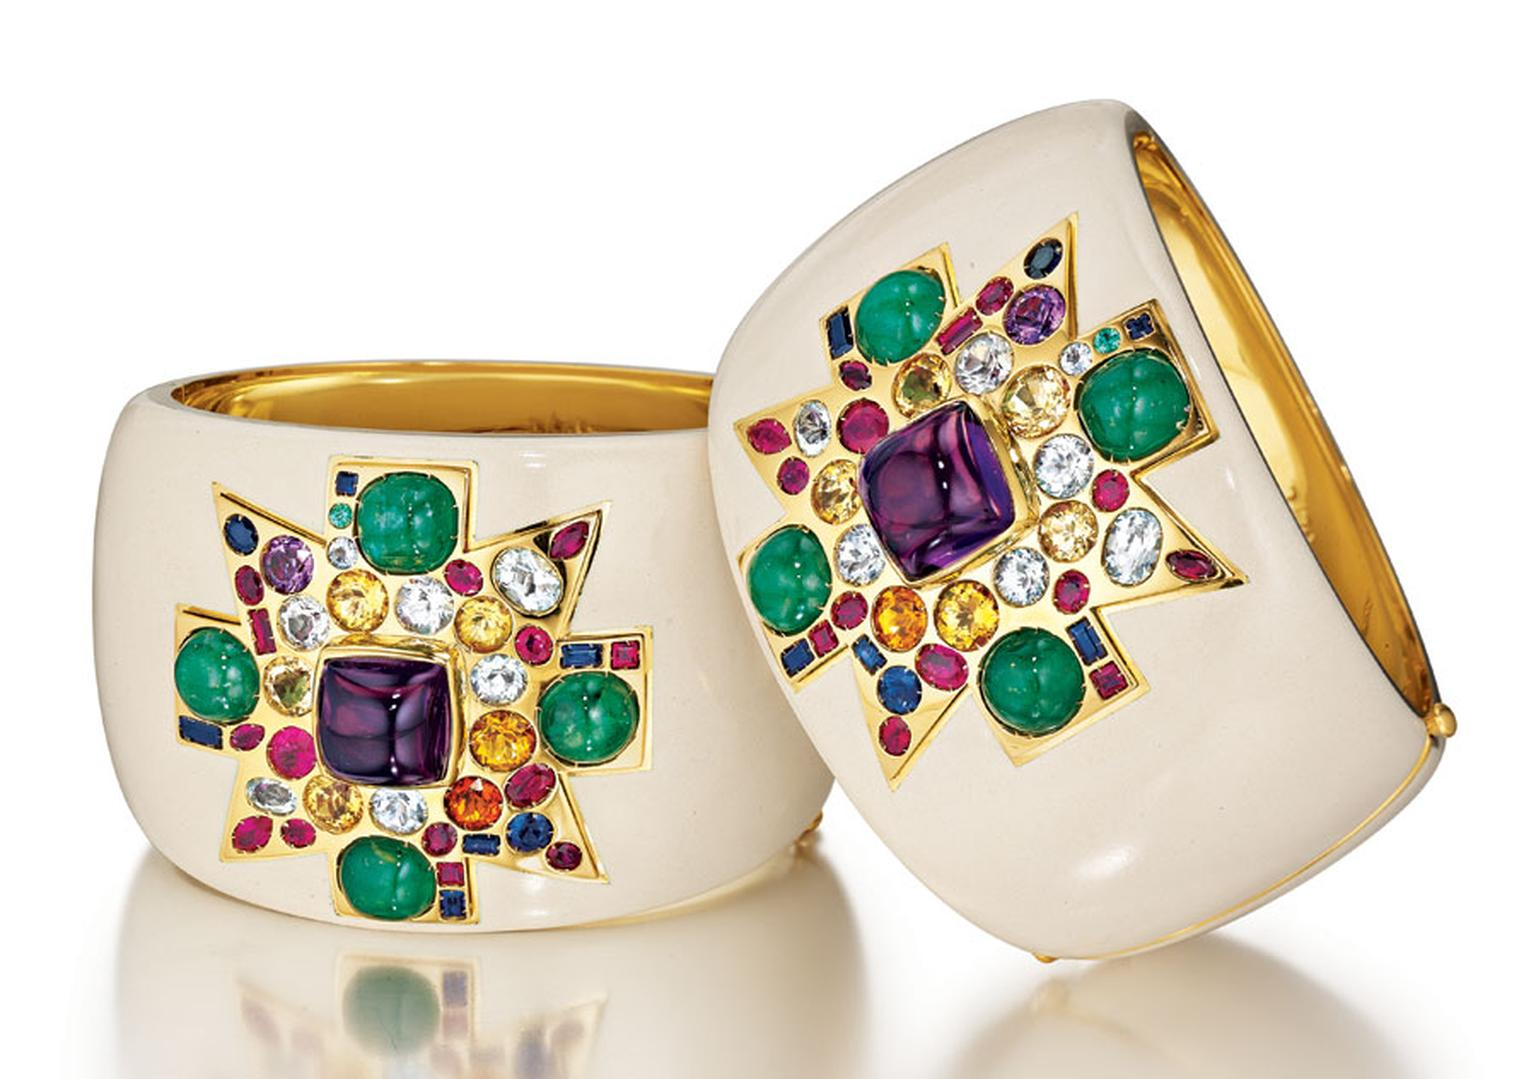 MPL-2013-Verdura-Coco-Chanels-Original-Maltese-Cross-Cuffsc.jpg